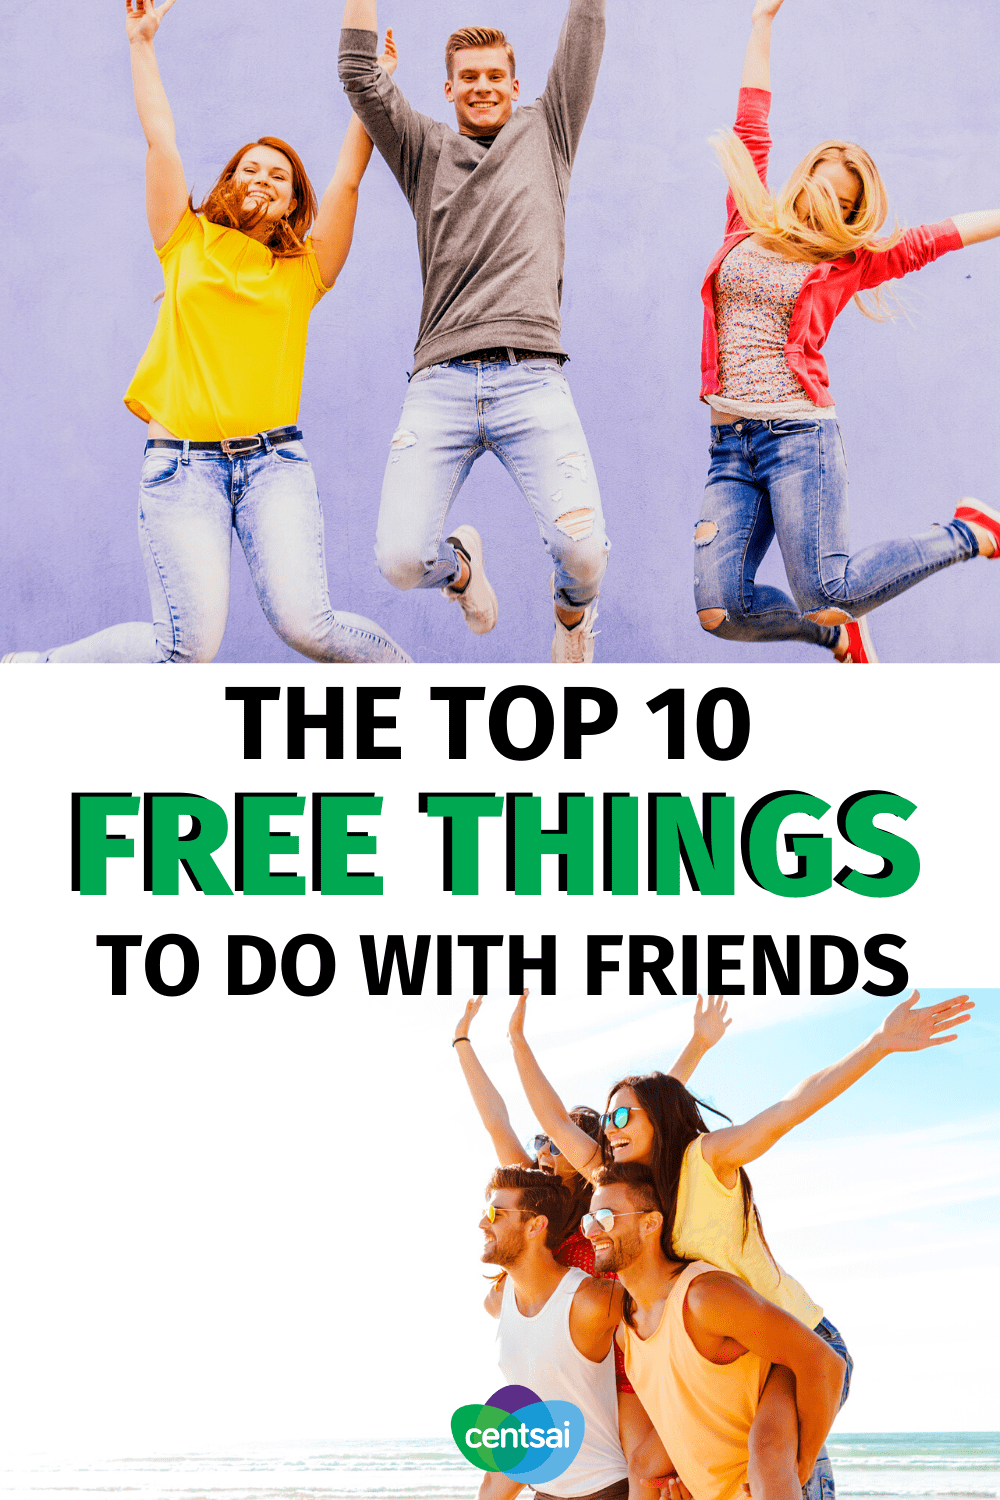 The Top 10 FREE Things to Do with Friends